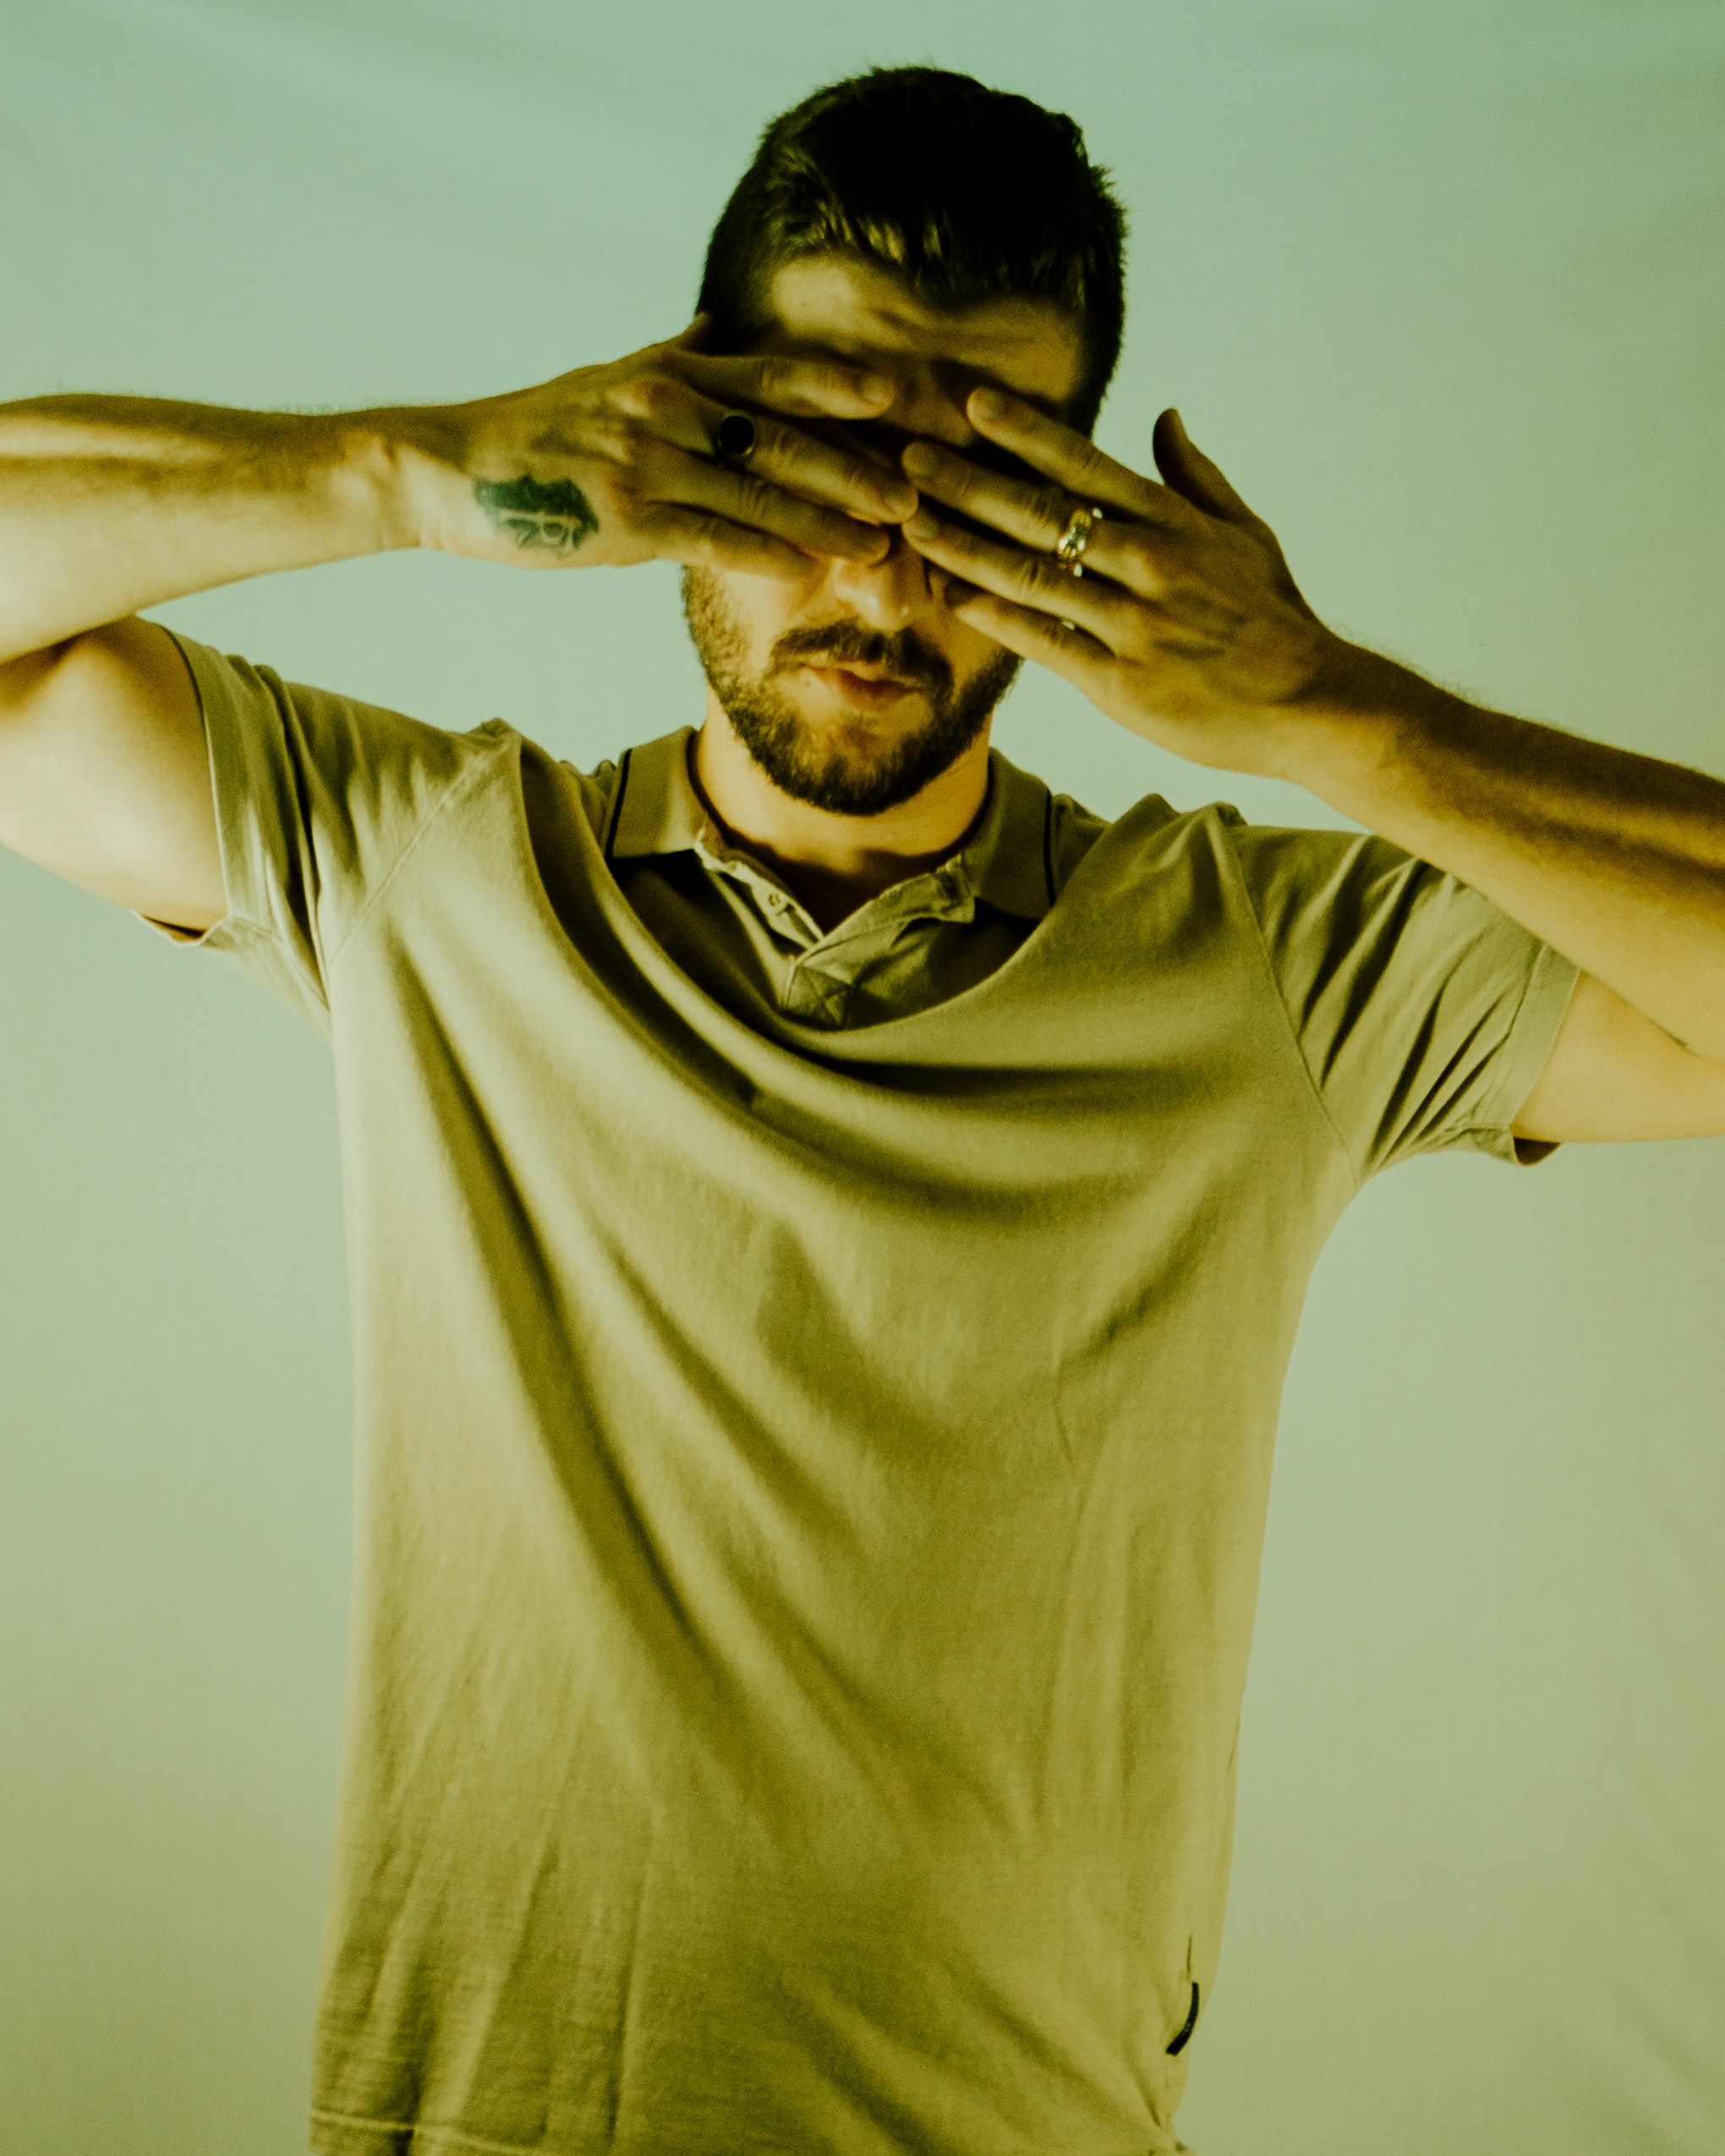 man covering his eyes using both hands